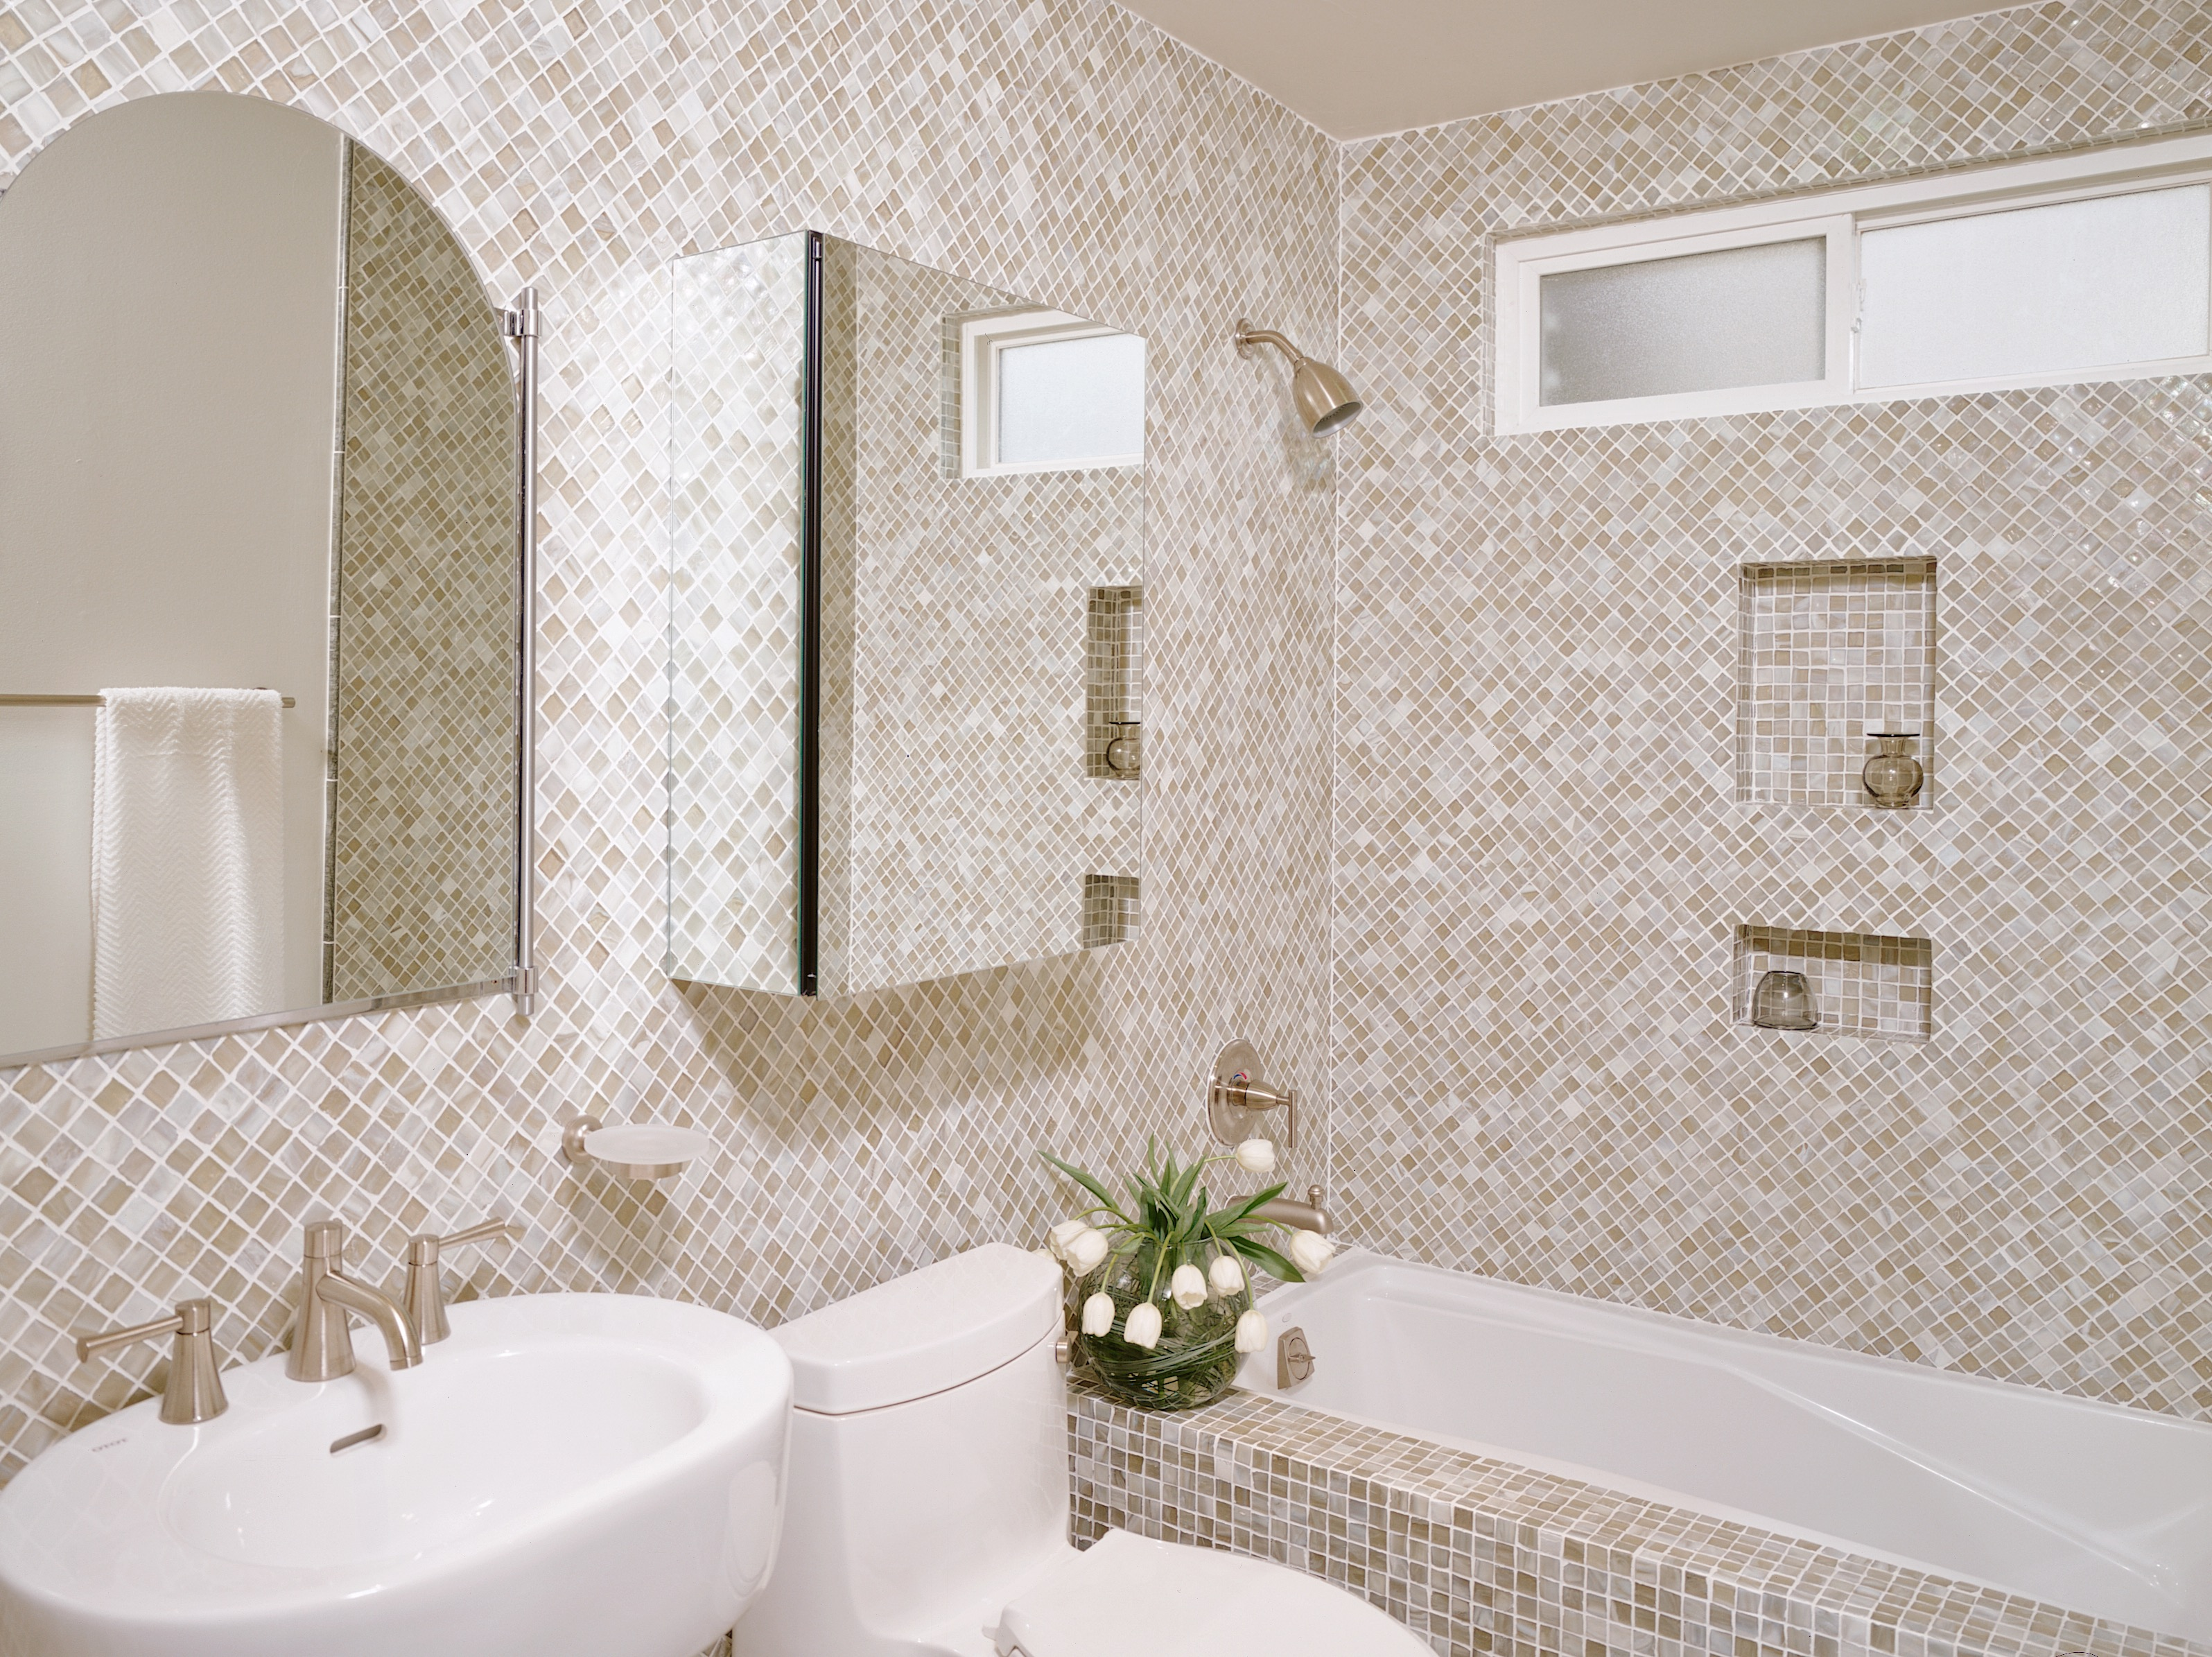 Traditional Bathroom Shower And Tub Combo With Ceramic Tile Wall Design (Image 18 of 19)